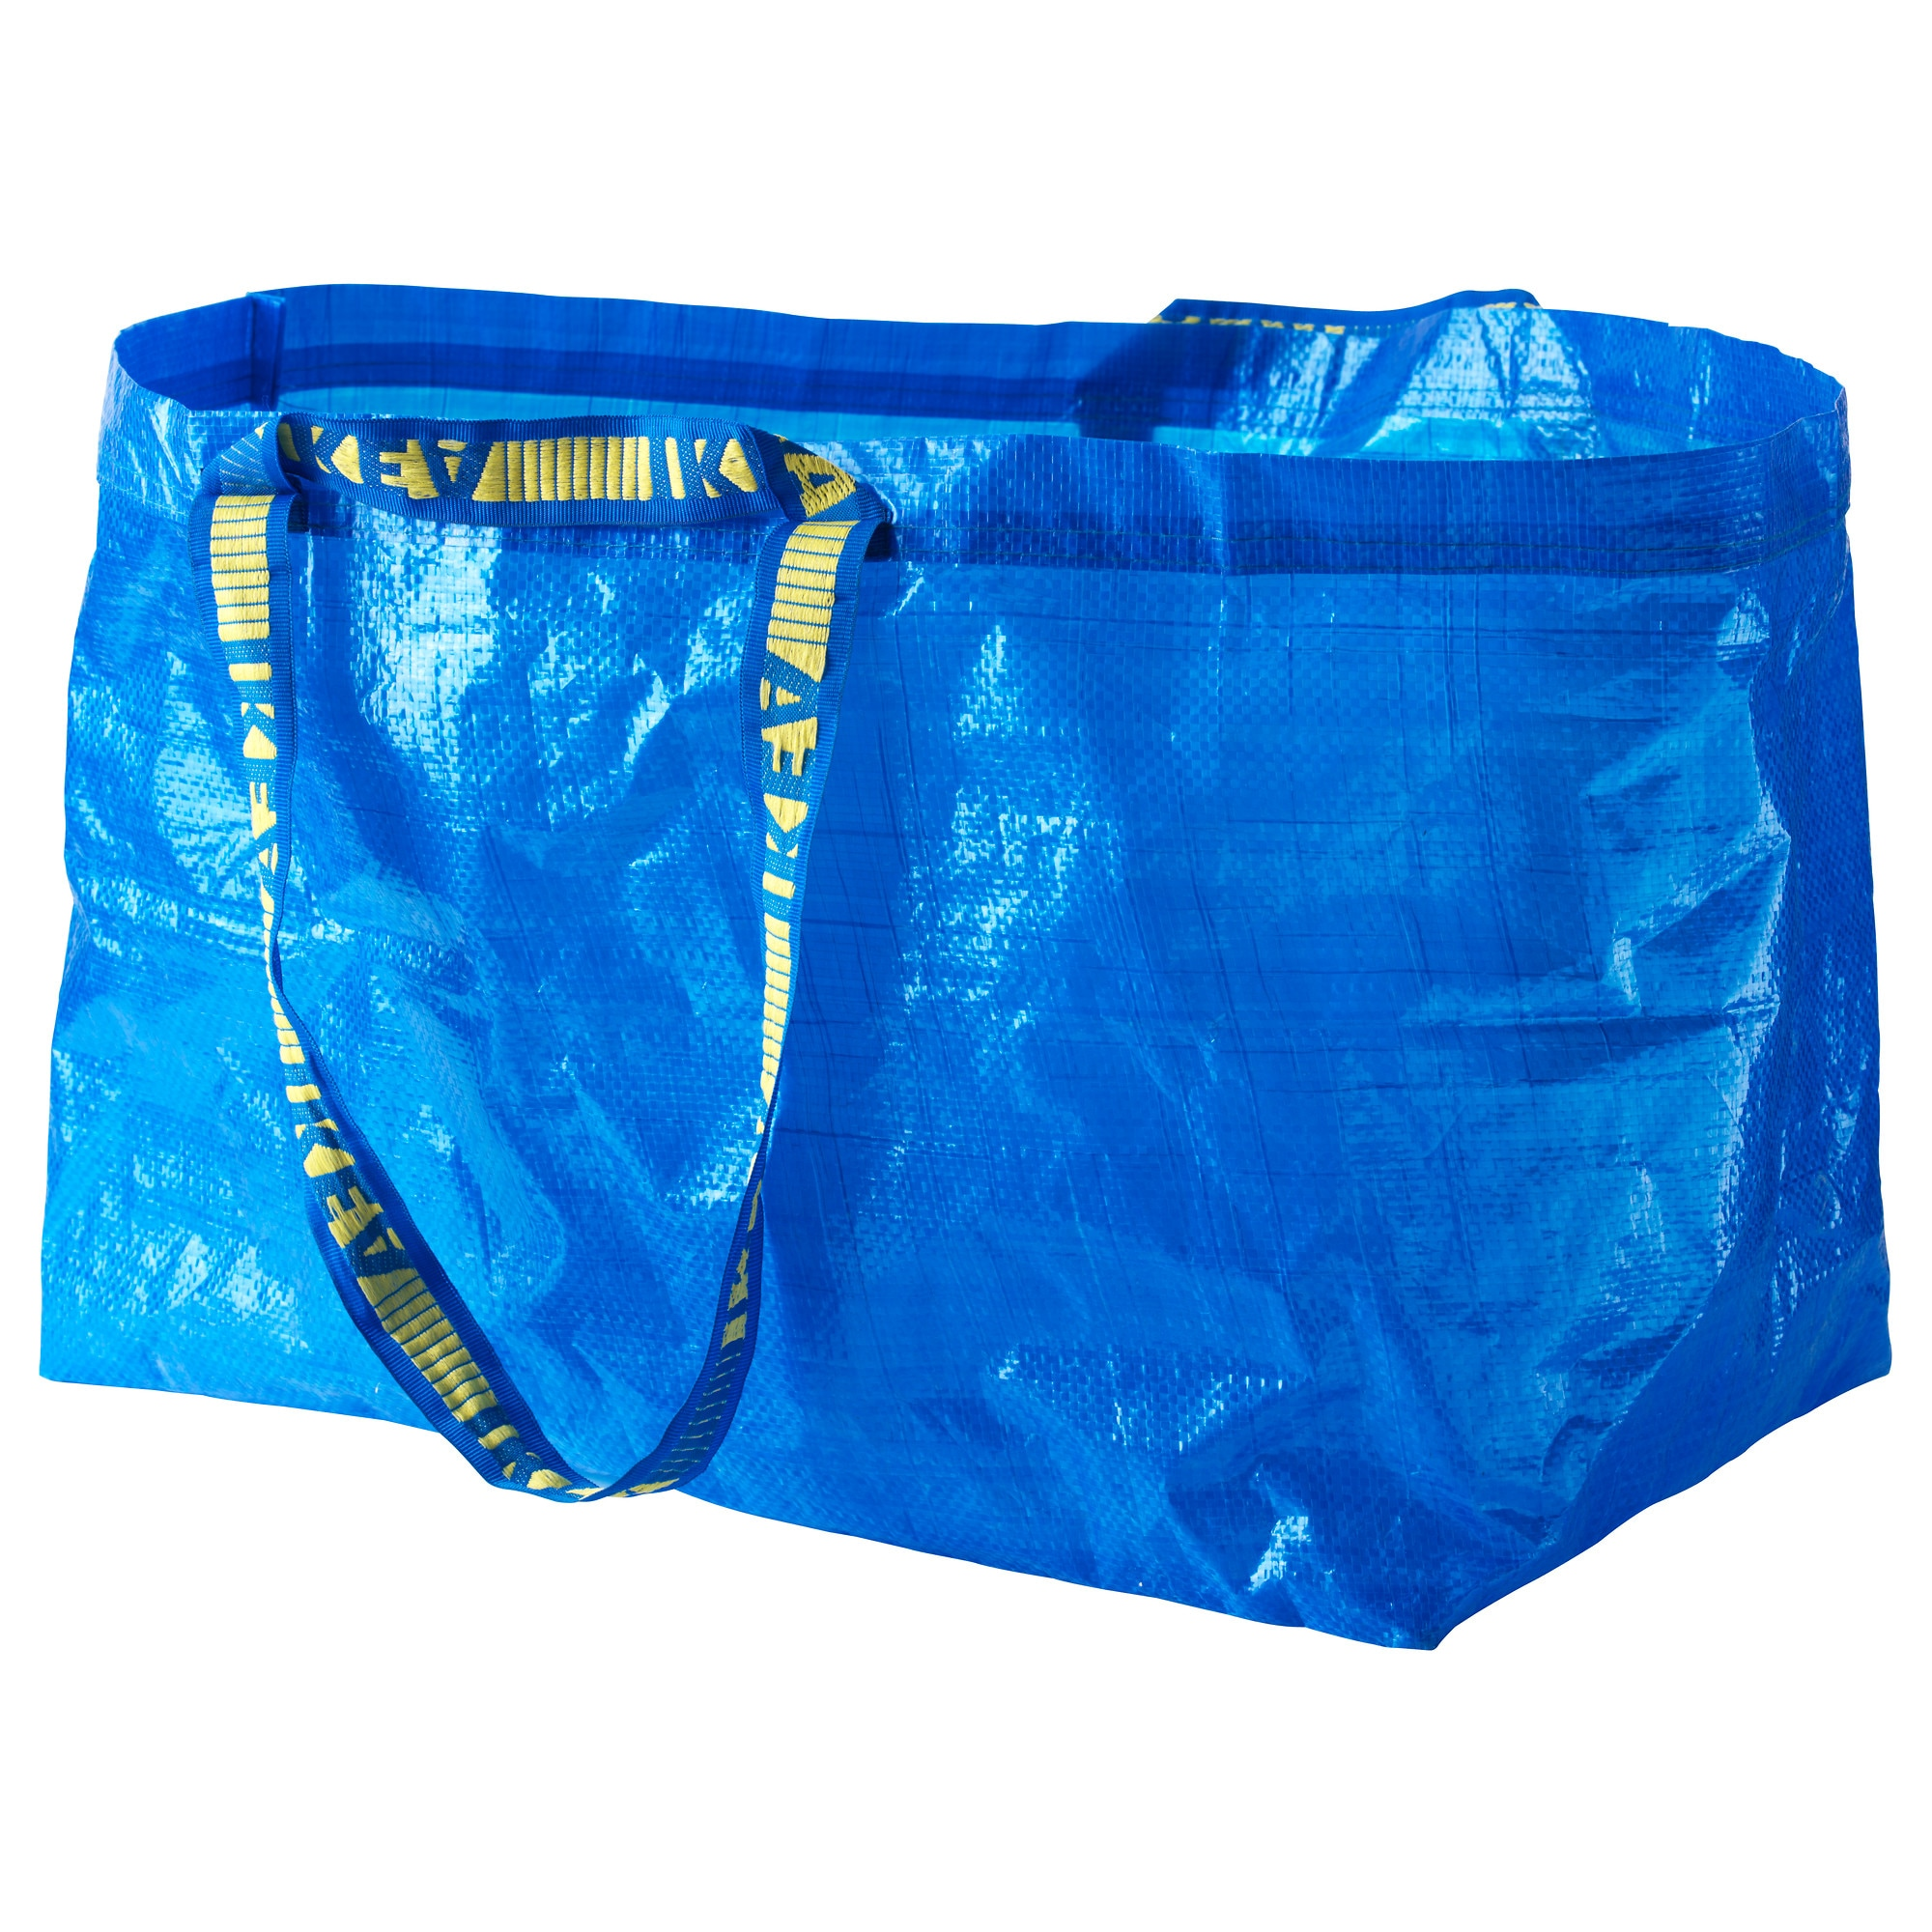 FRAKTA Shopping bag, large - IKEA